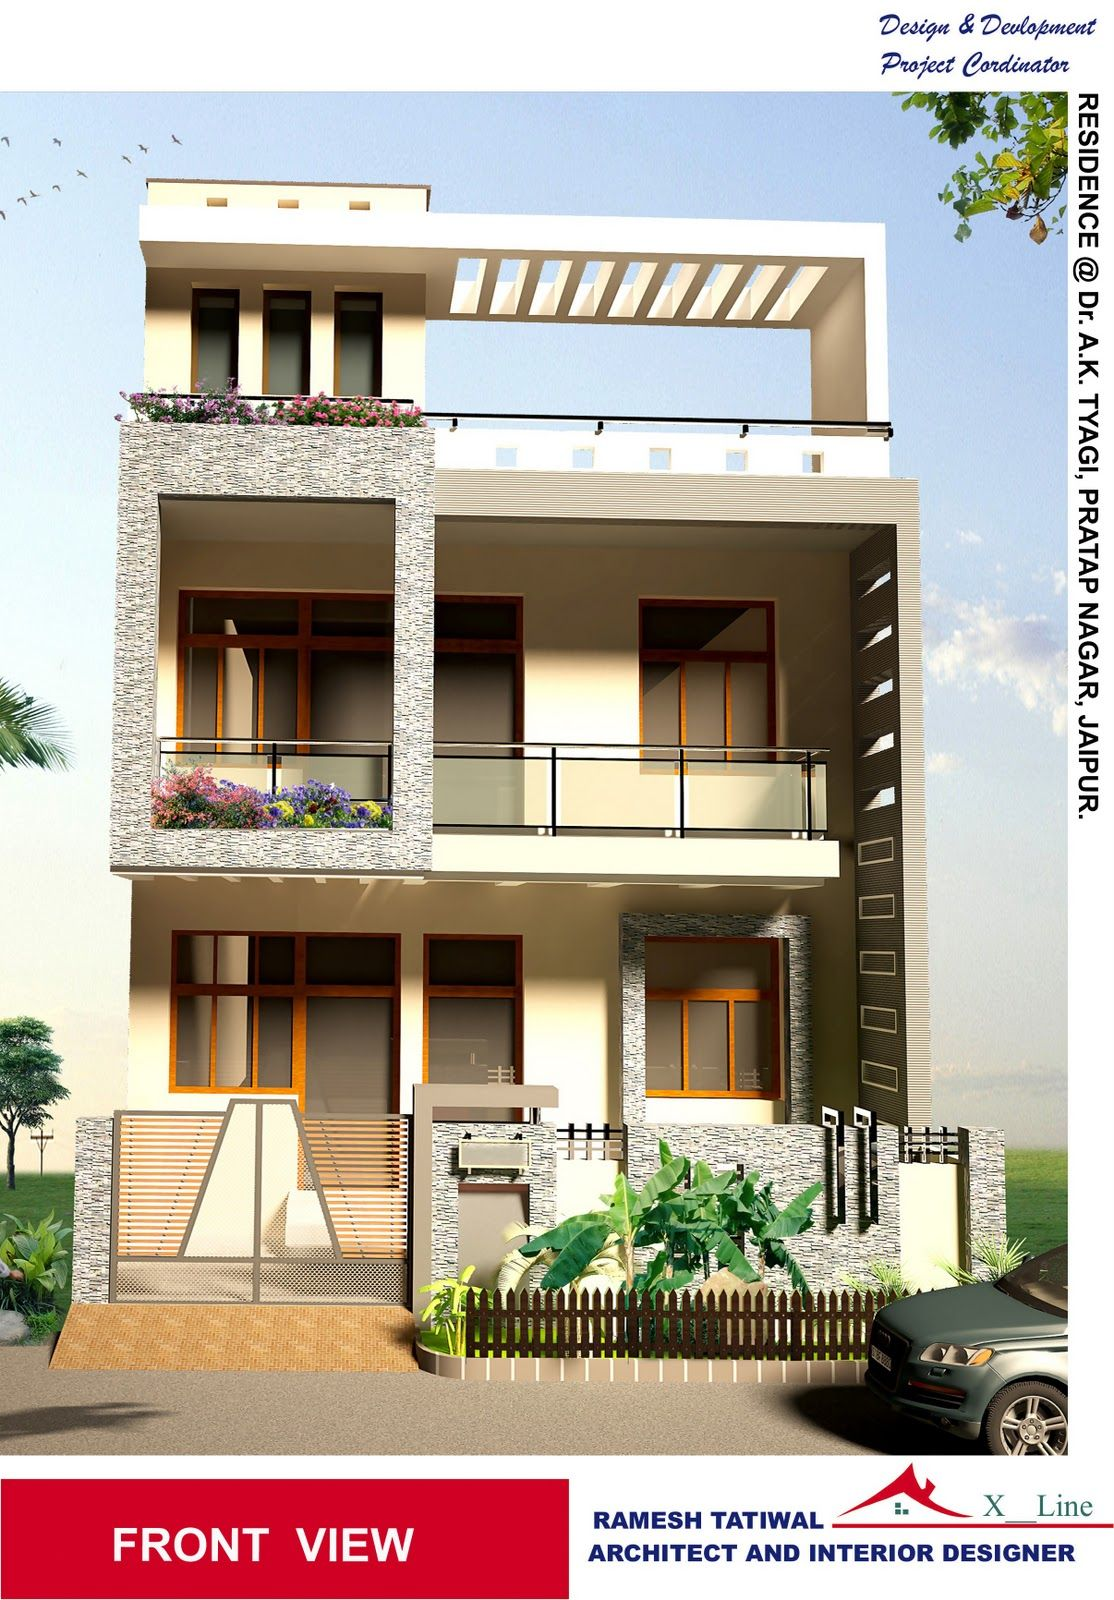 Home design house modern house House deaigns